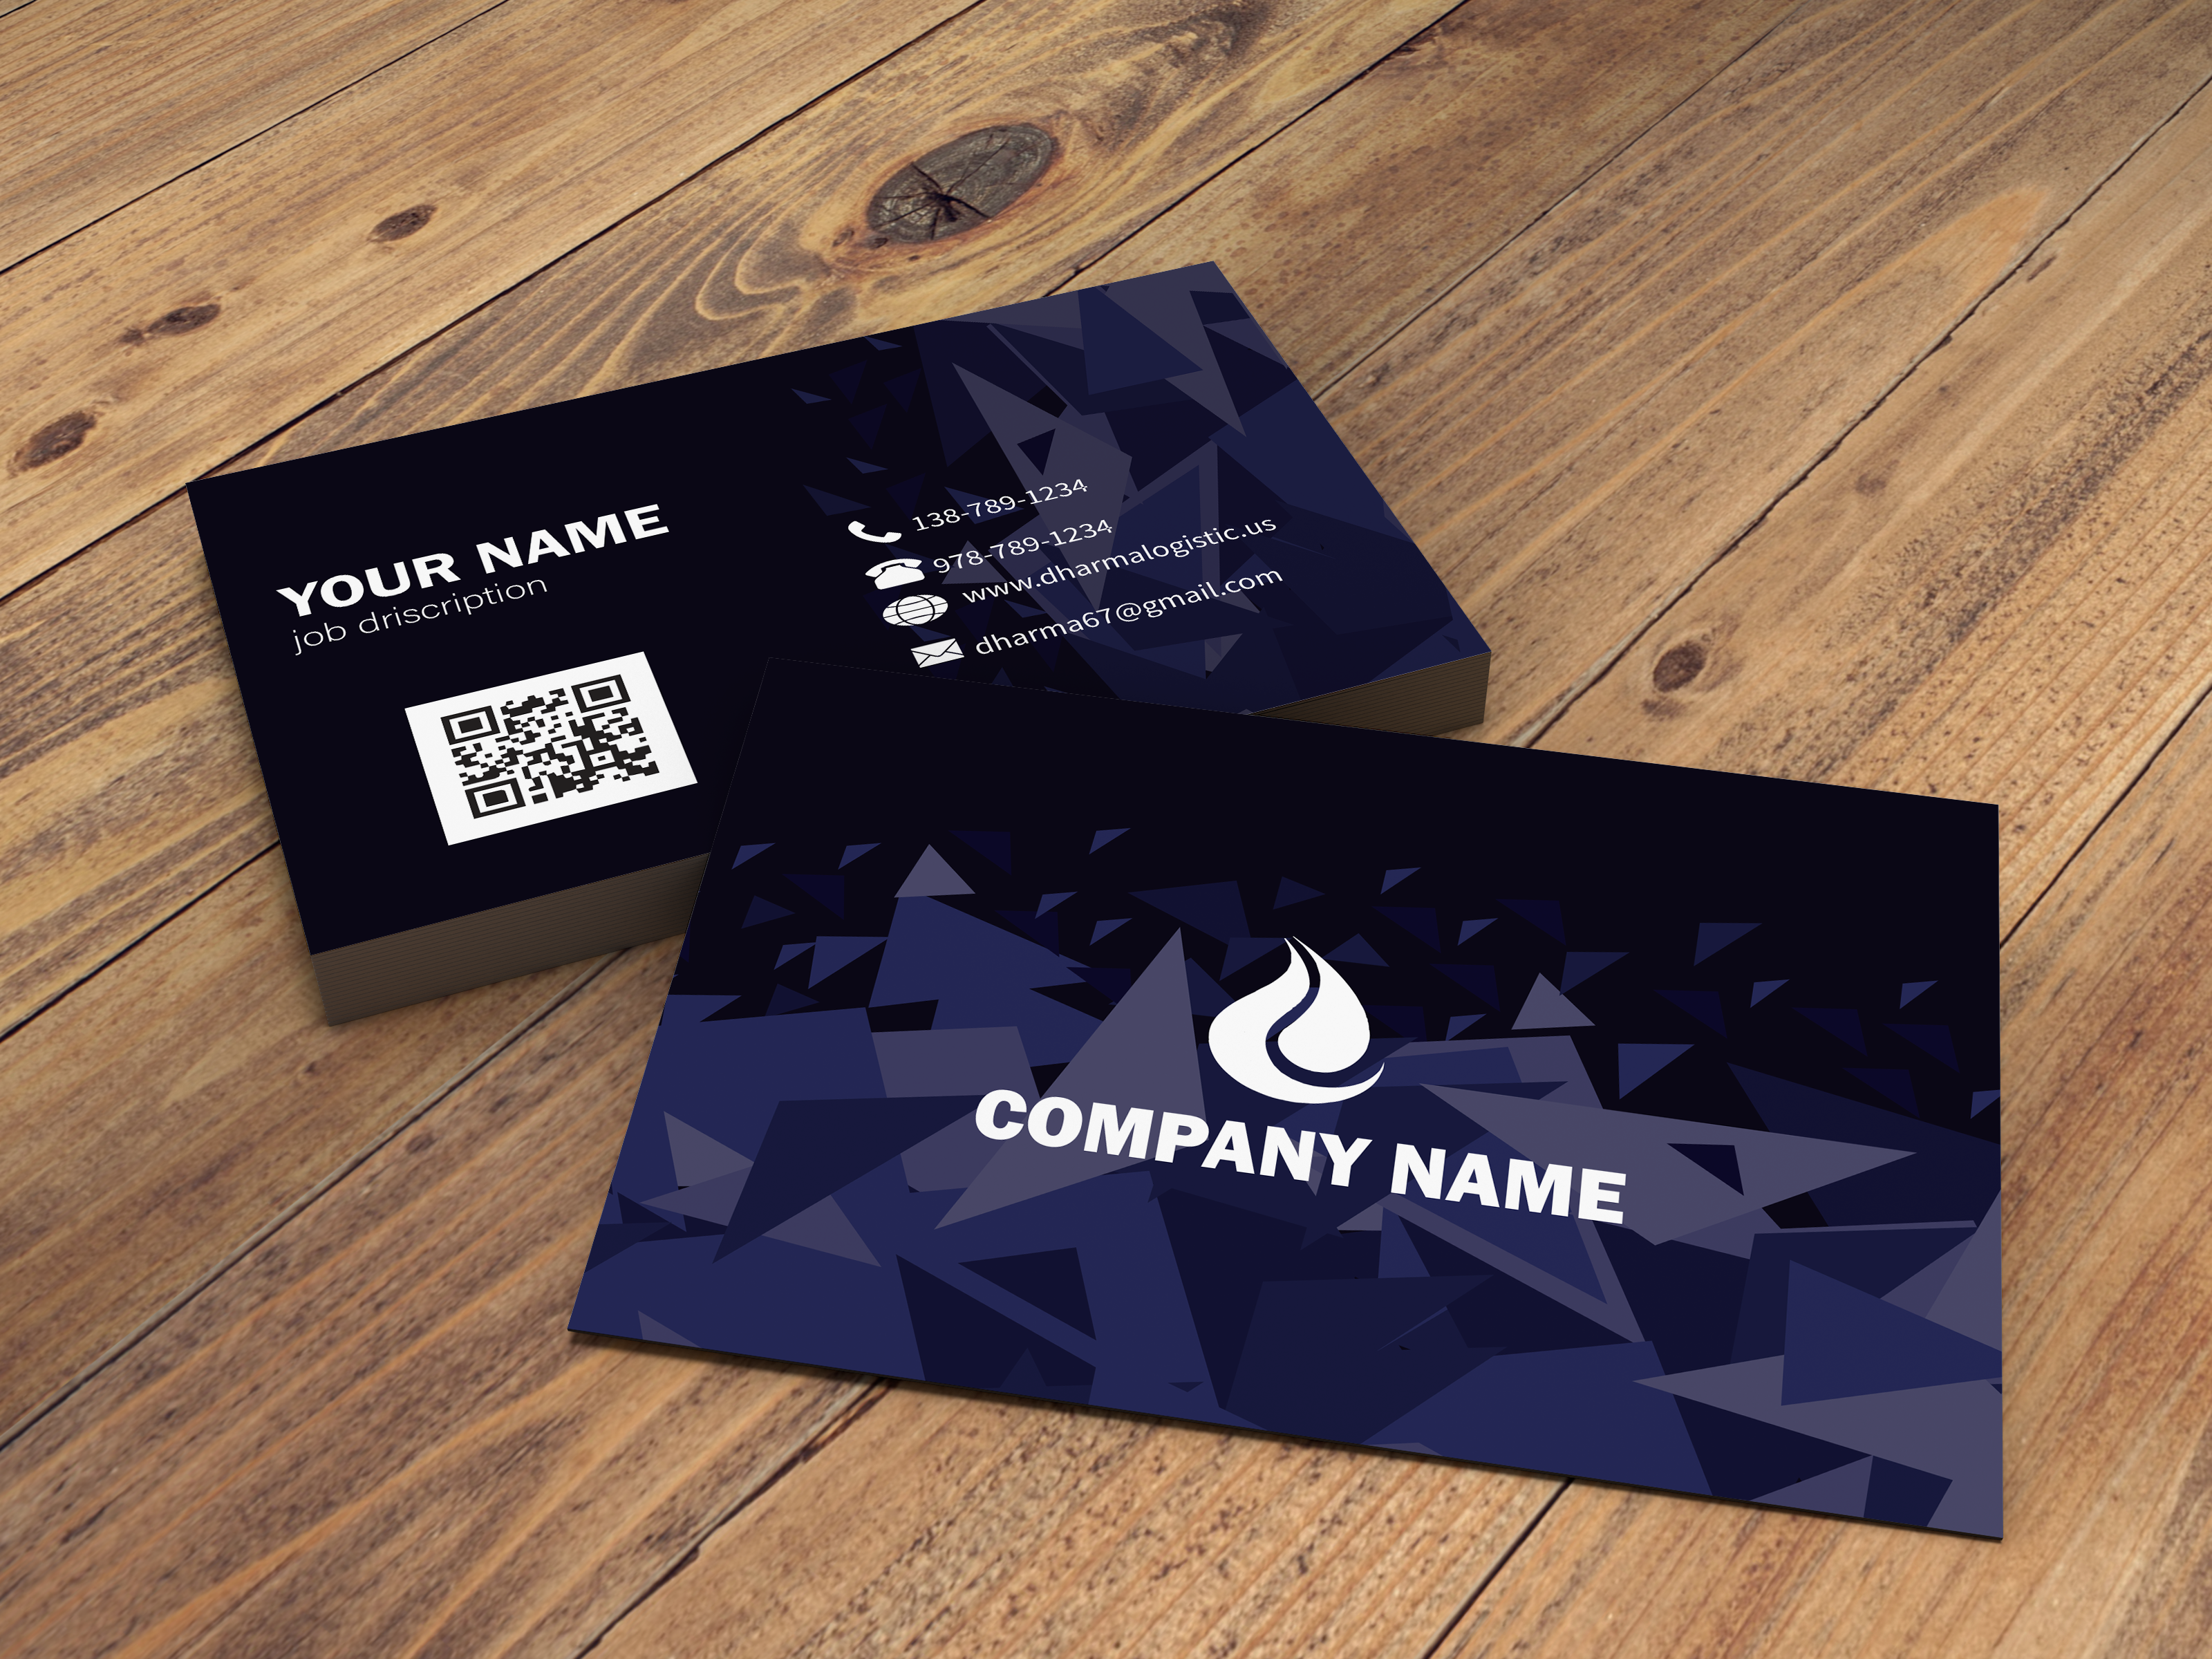 I will do unique/creative business card design